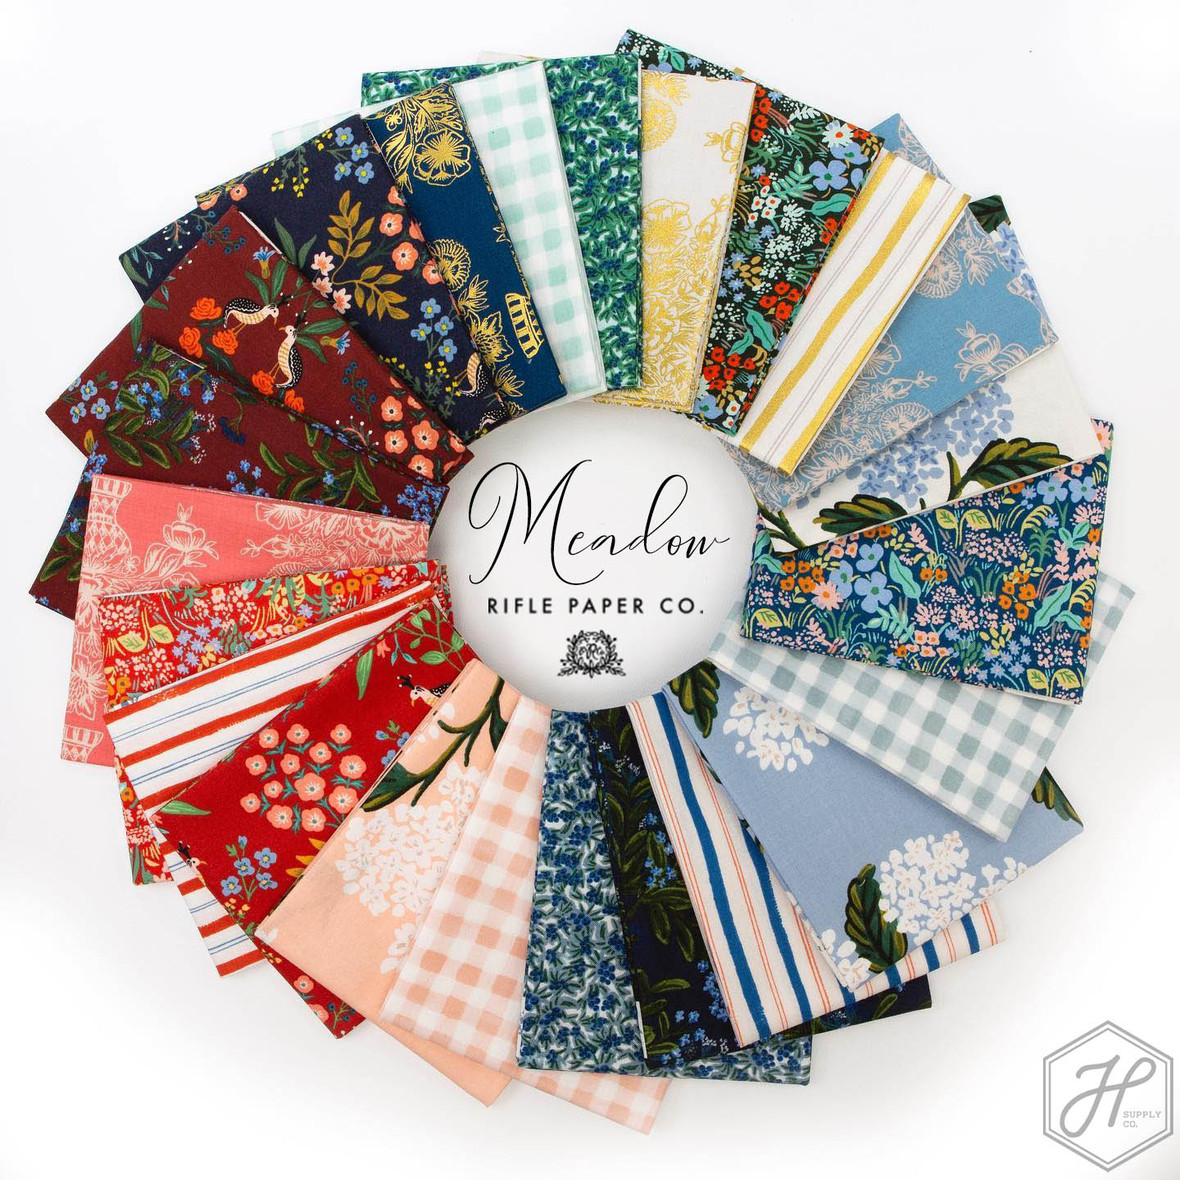 Meadow from Rifle Paper Co at Hawthorne Supply Co